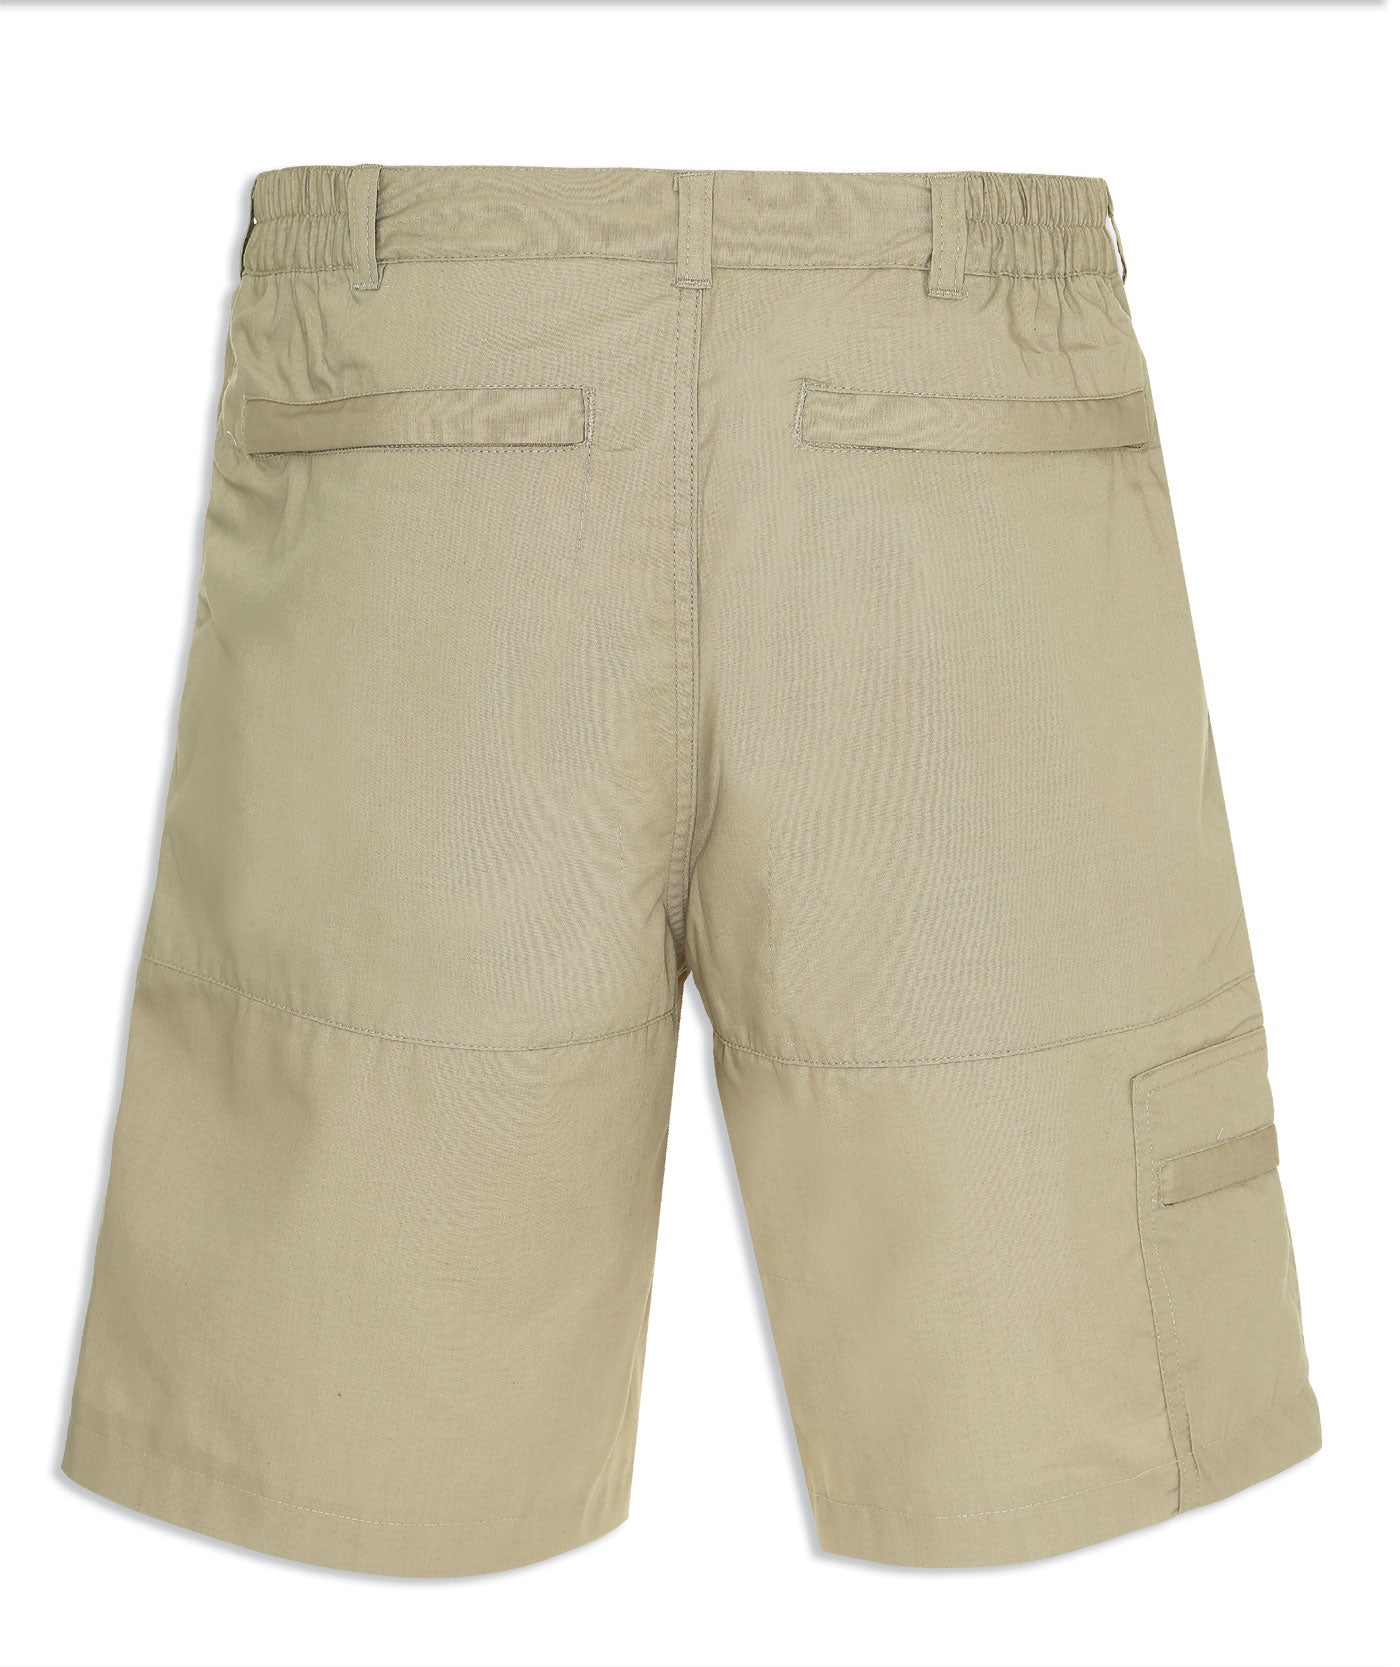 Stone outdoor shorts in stone colour back pockets